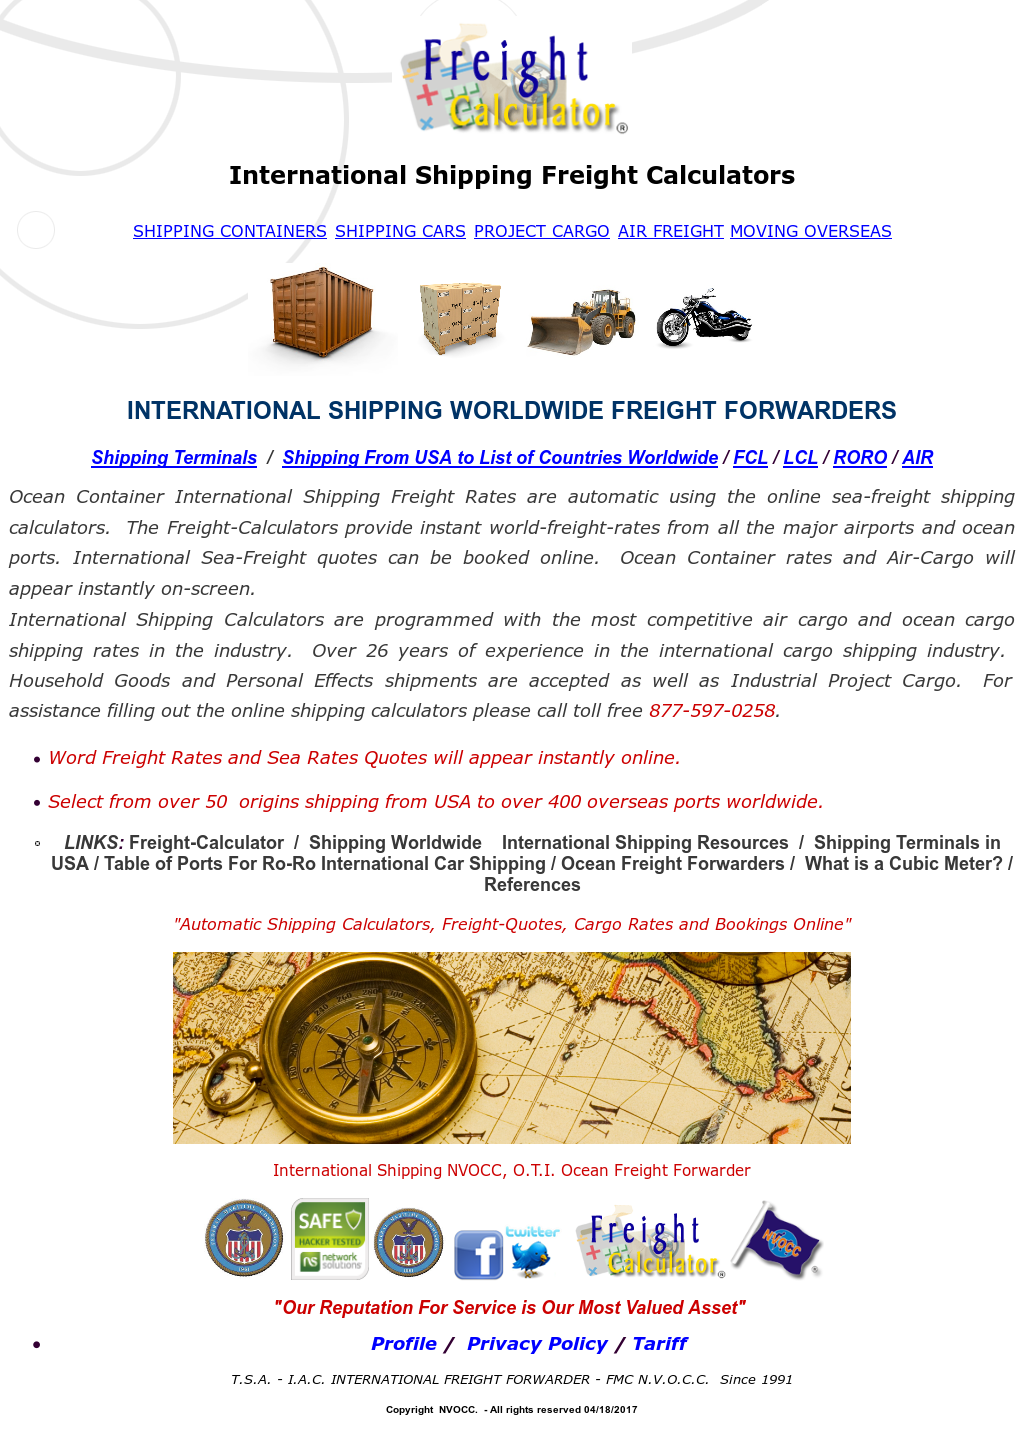 Freight-calculator Competitors, Revenue and Employees - Owler